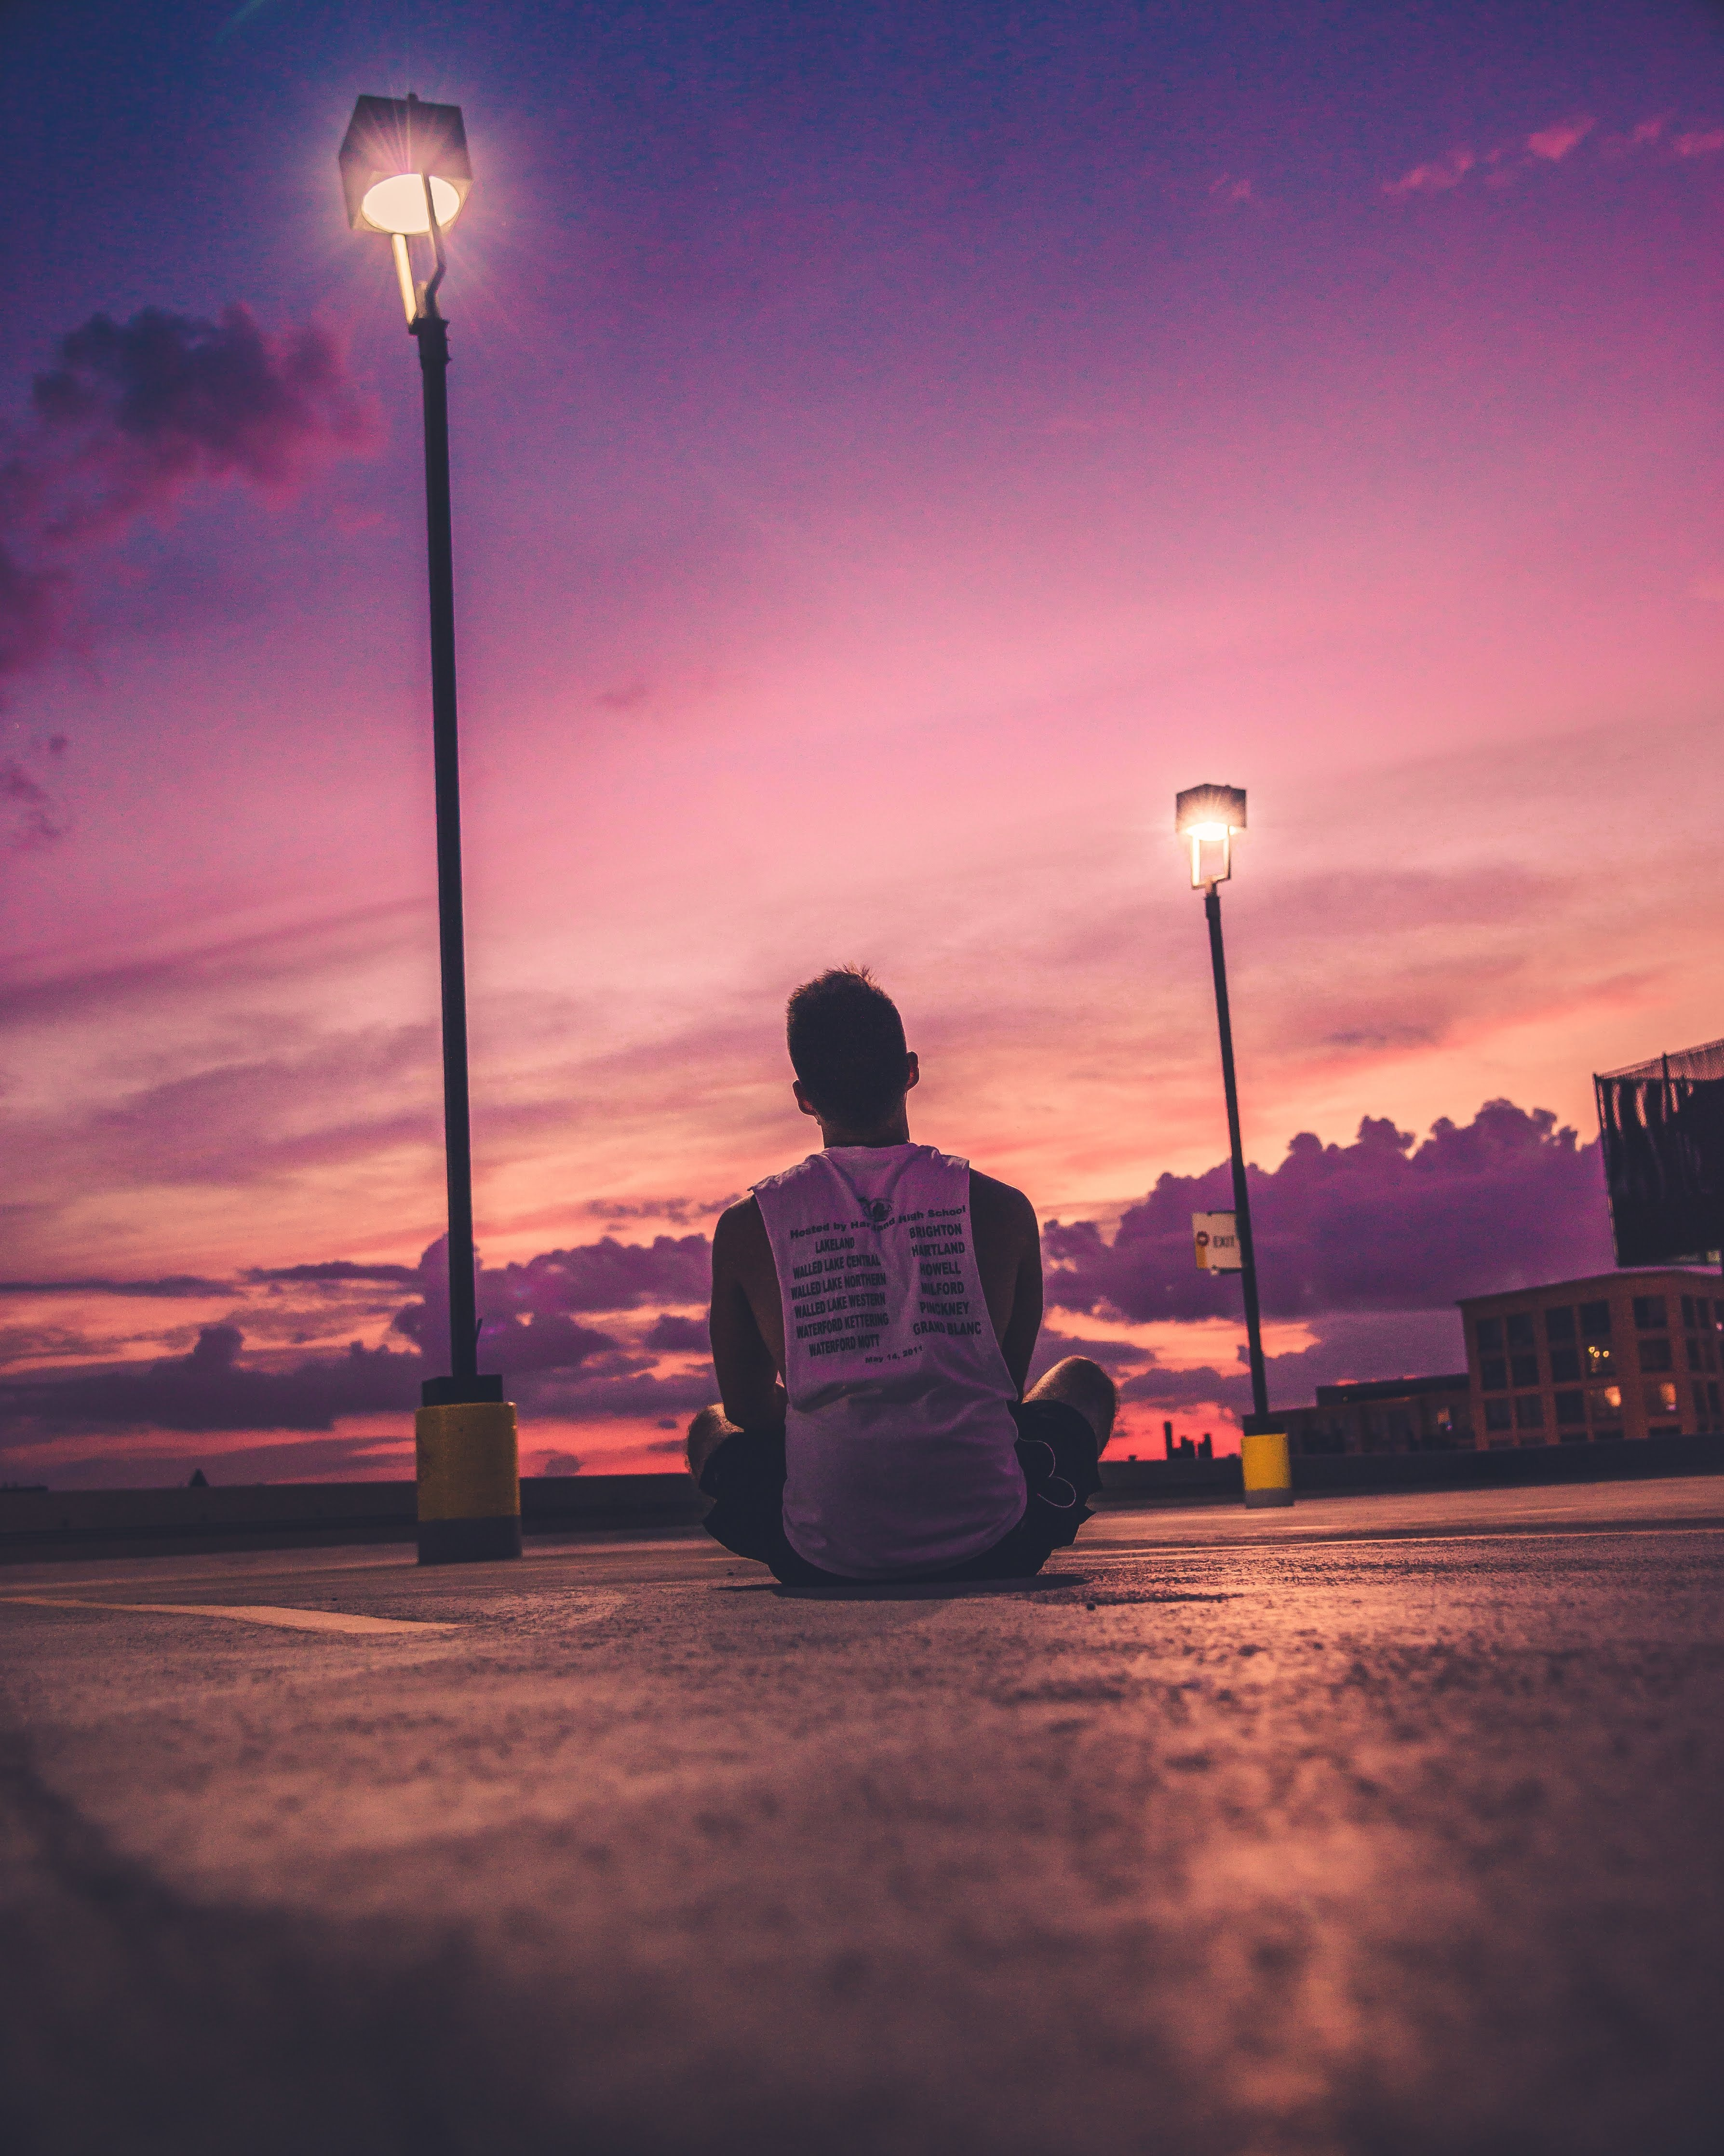 man sitting on road near turned-on black post lamp during sunset